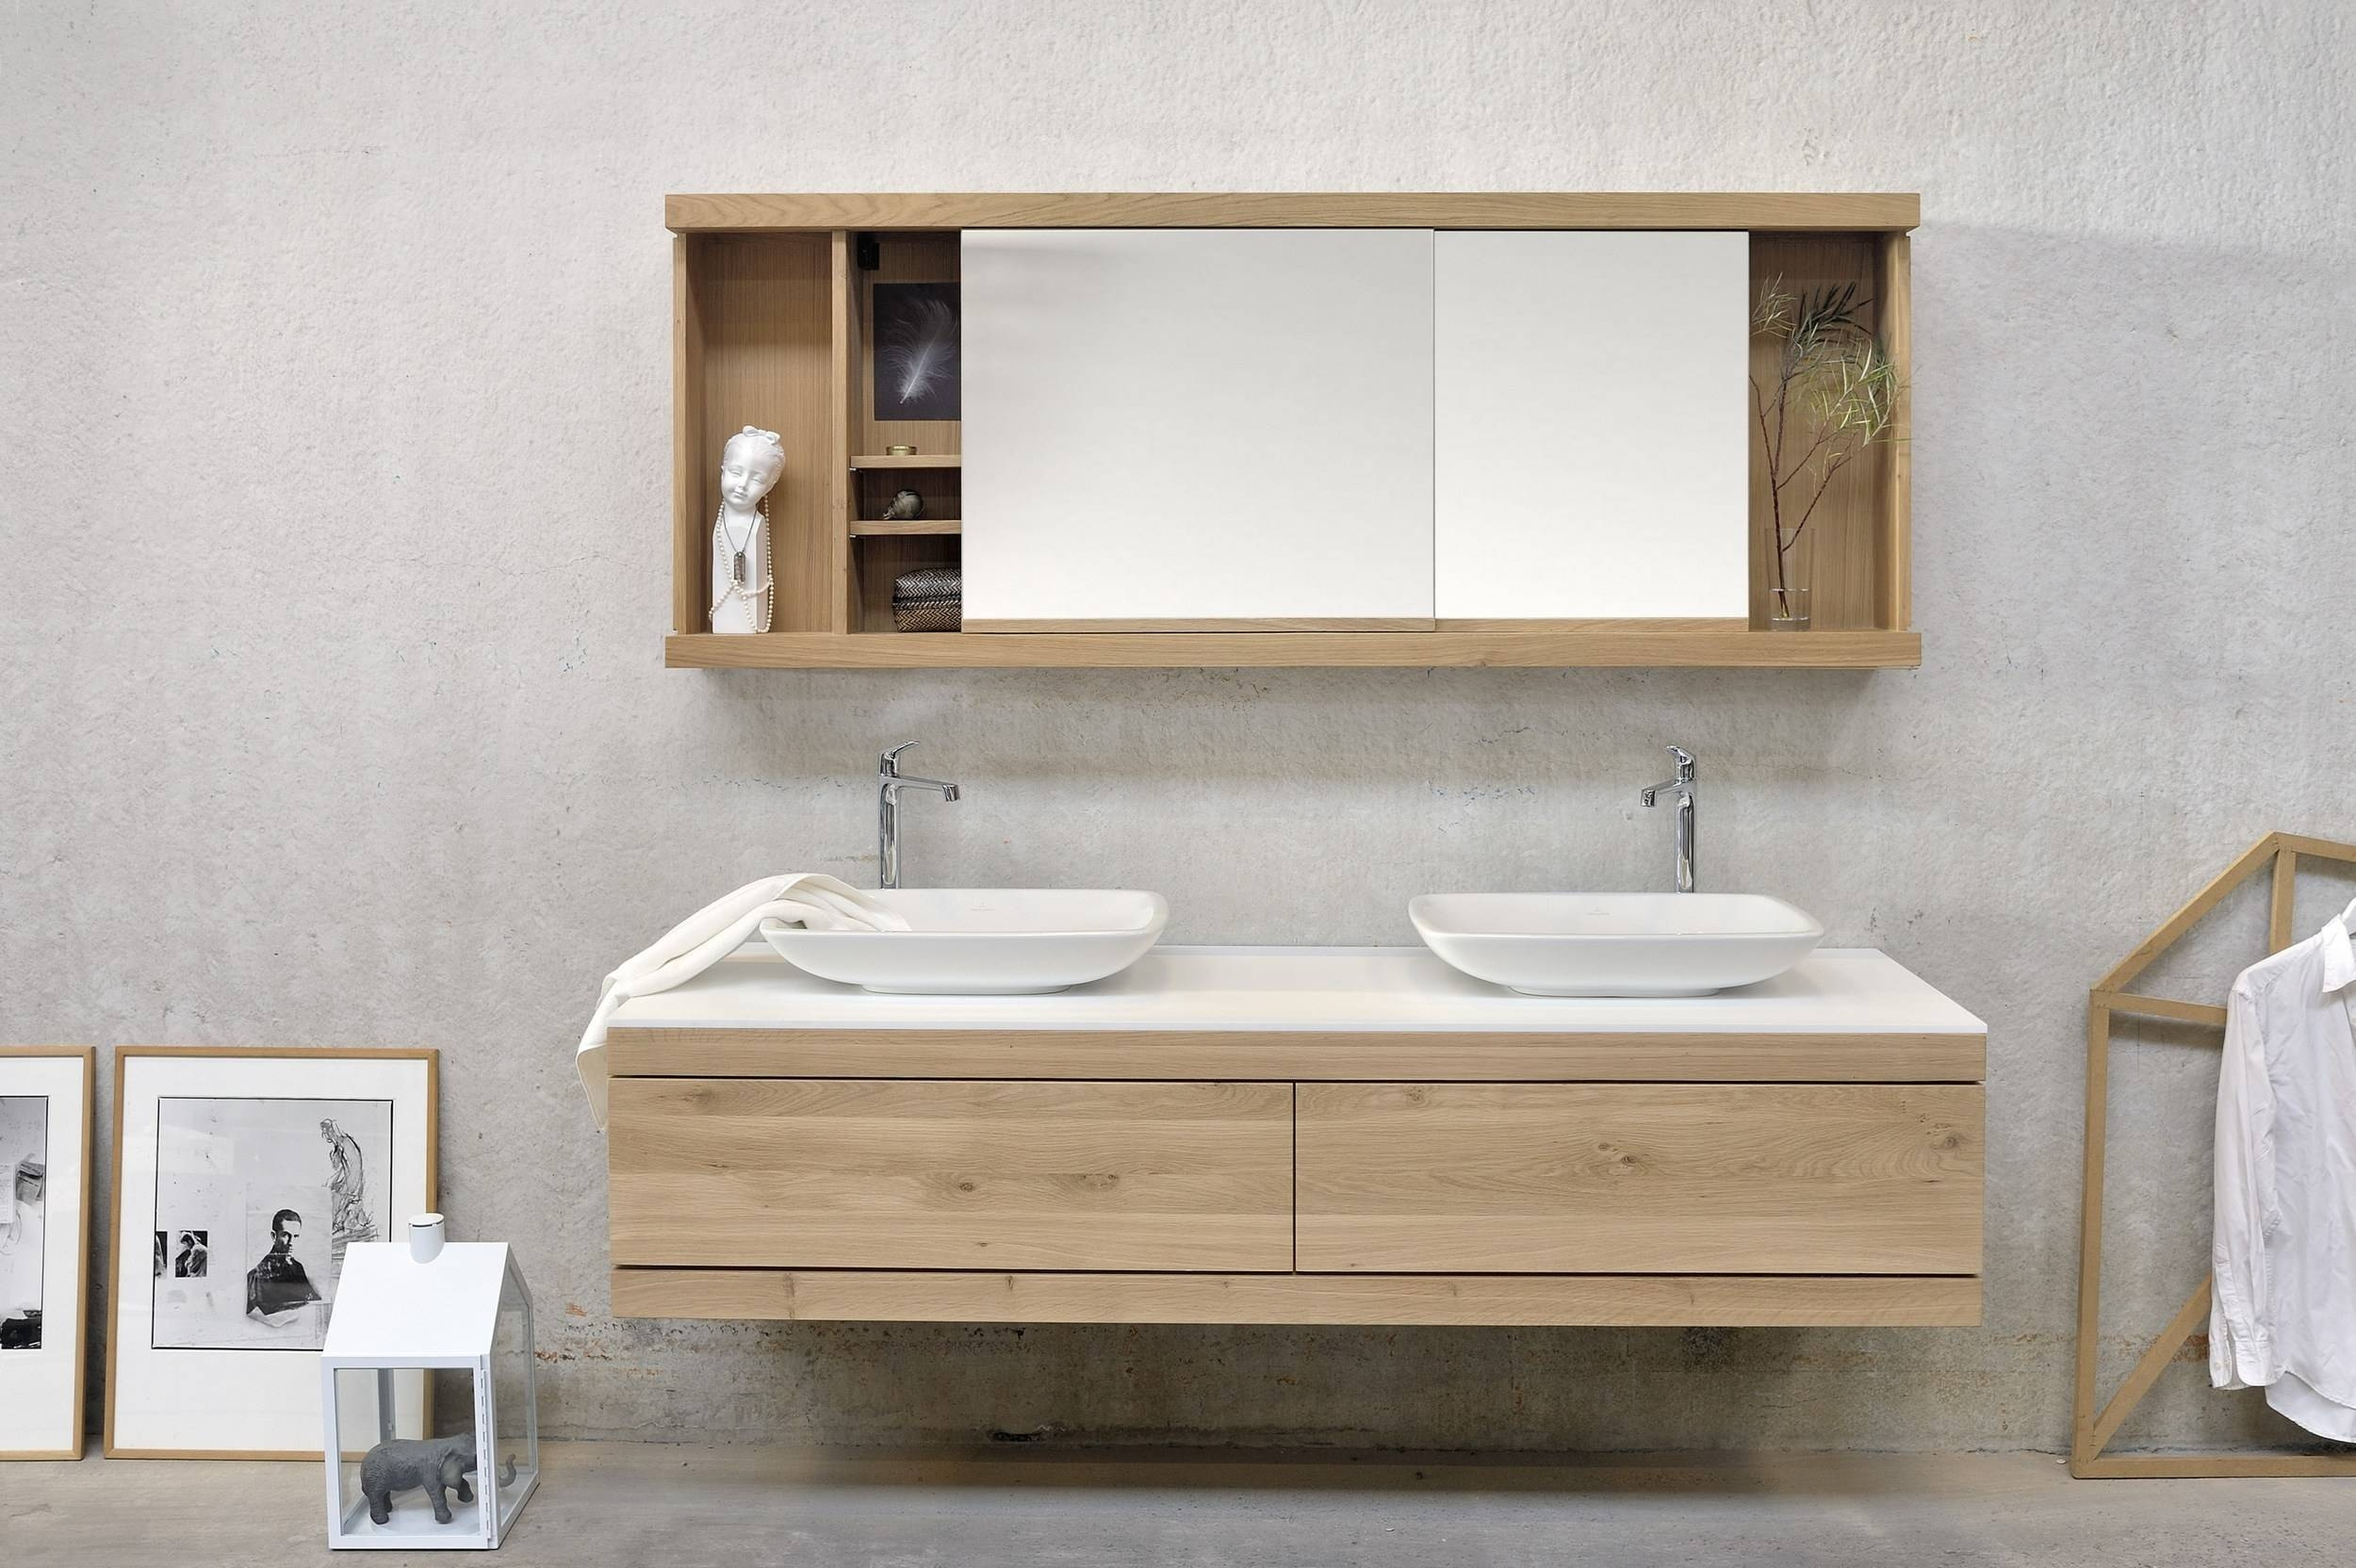 Bathroom : White Recessed Medicine Cabinet Unusual Floral with regard to Unusual Mirrors For Bathrooms (Image 15 of 25)